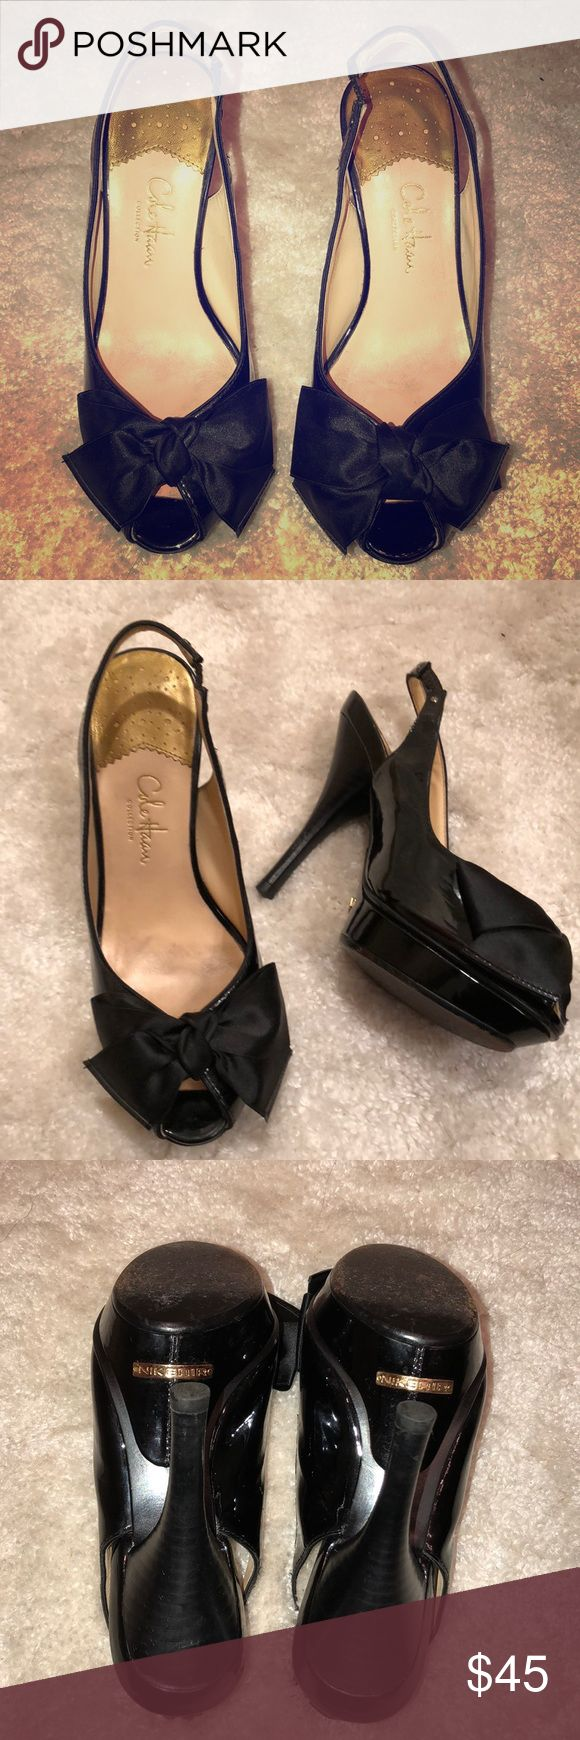 👠Cole Haan Black Patent Peep-Toe Heels  🎀 Cole Haan Nike-Air black peep-toe sling back pumps adorned with a cute satin bow. Classy shoe with a sexy elegant twist. Don't let the heel height fool you. These lovely shoes are super comfy yet very stylish.  * WILL SHIP NEXT BUSINESS DAY* Cole Haan Shoes Heels